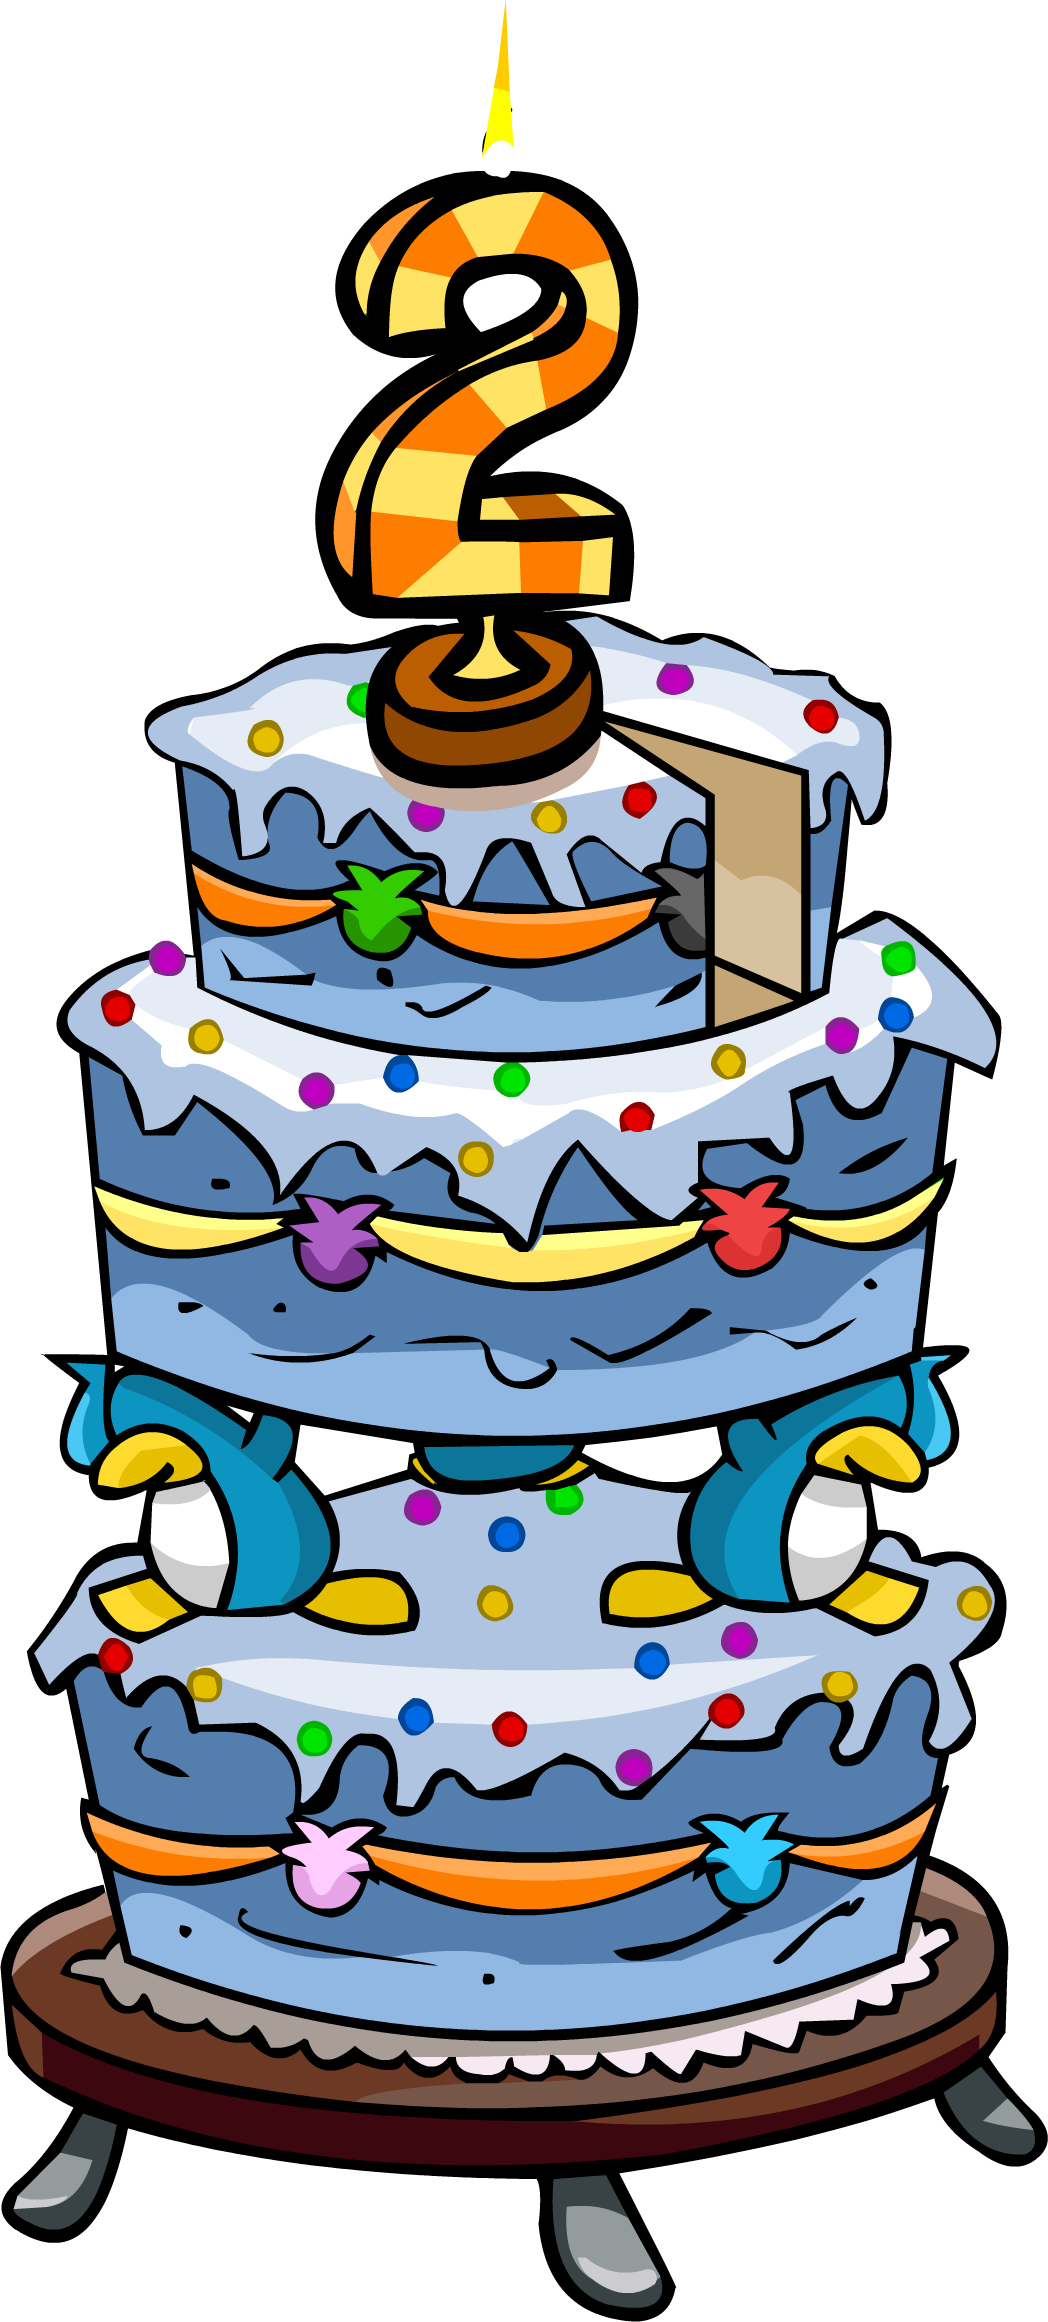 Sprinkles clipart cake decorating. Anniversary cakes club penguin